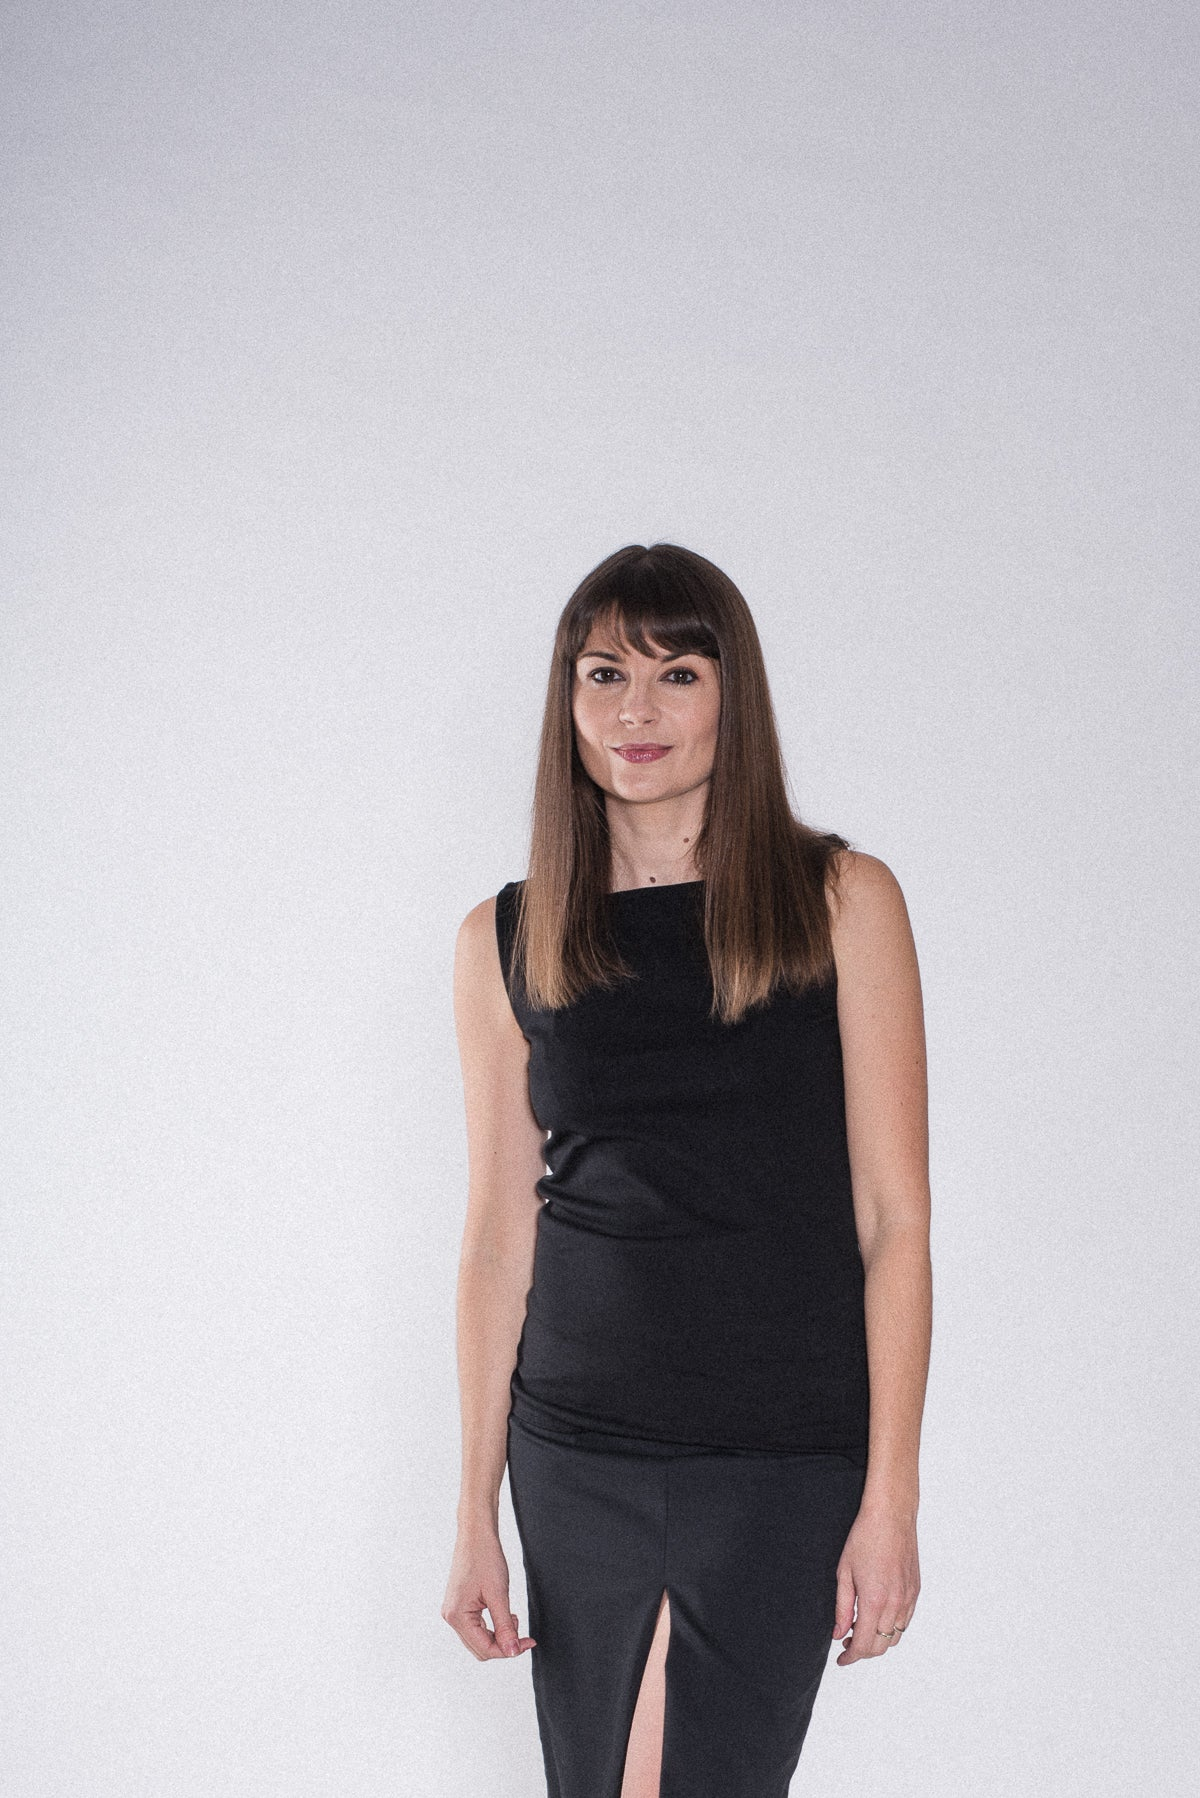 Jersey Top in schwarz, Ärmellos - Top - 7dresses